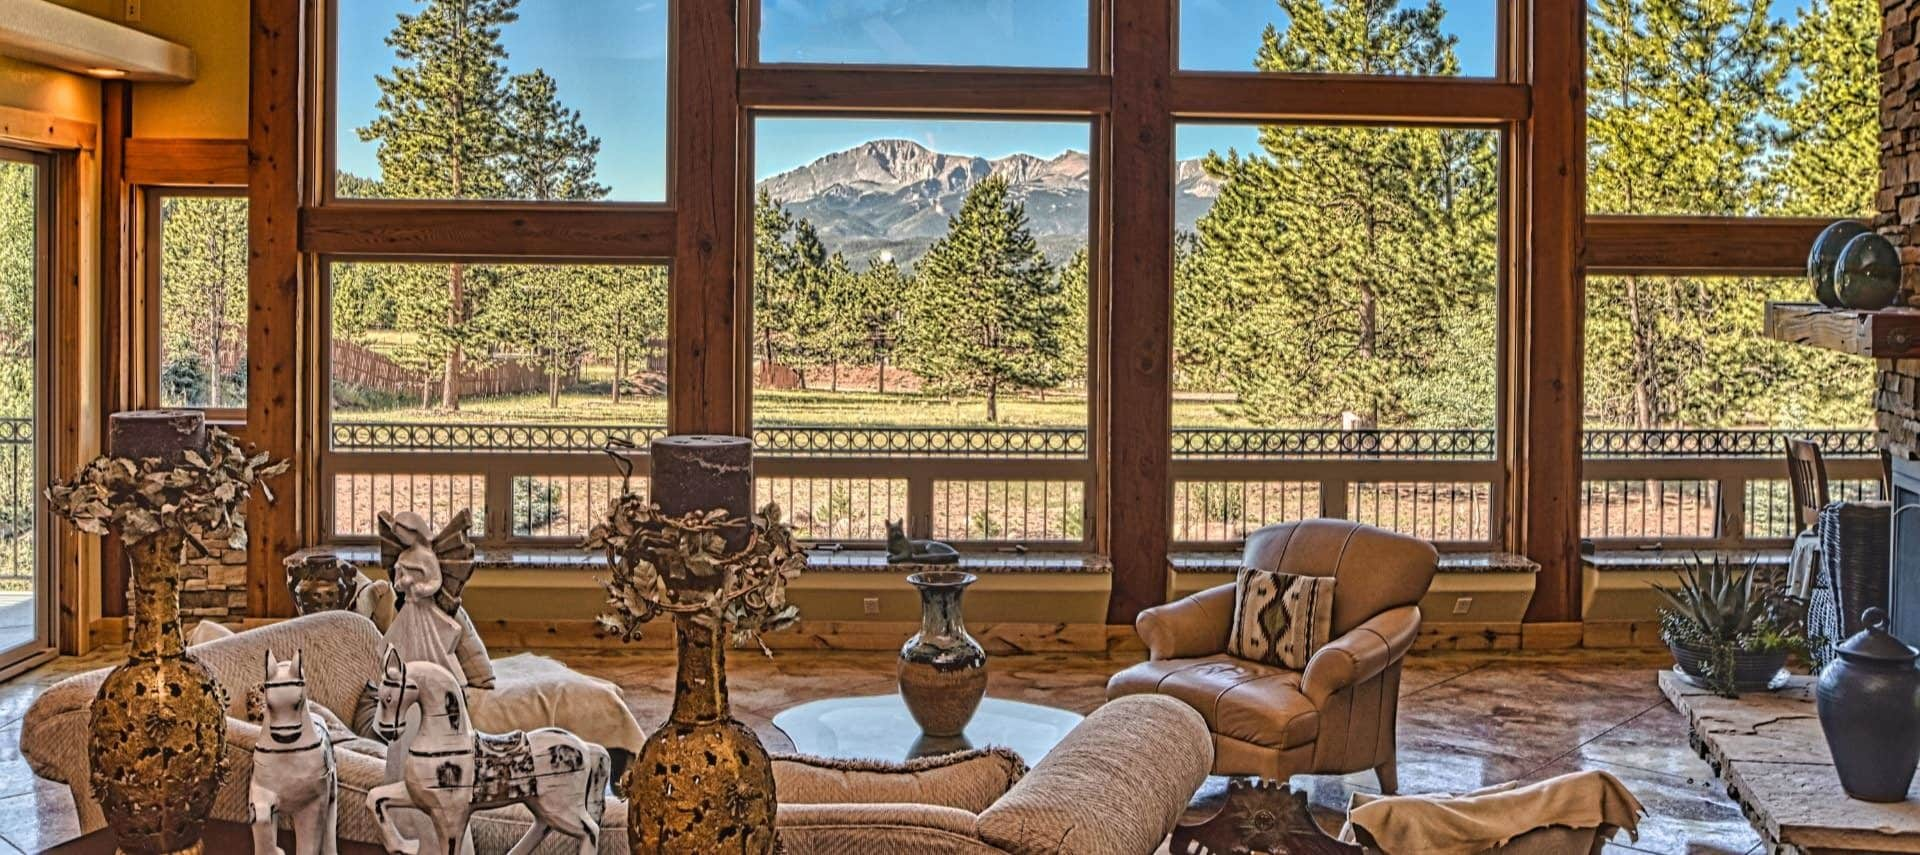 Large great room filled with ornate decorations with a view of large pine trees and mountain range in the background